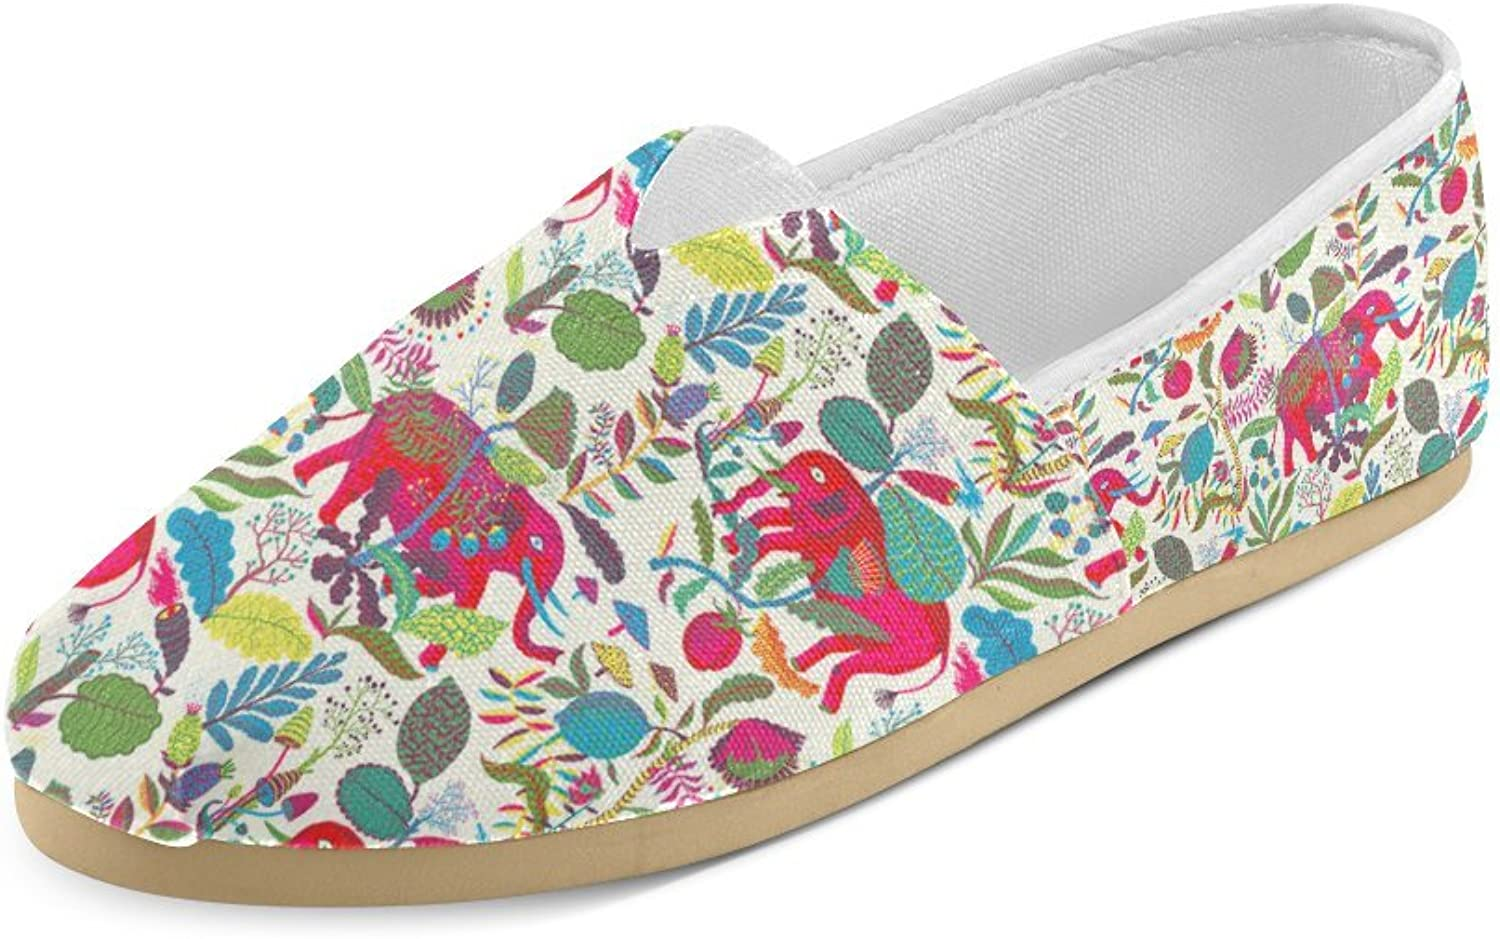 HUANGDAISY Unisex shoes colorful Elephants Pattern Casual Canvas Loafers for Bia Kids Girl Or Men